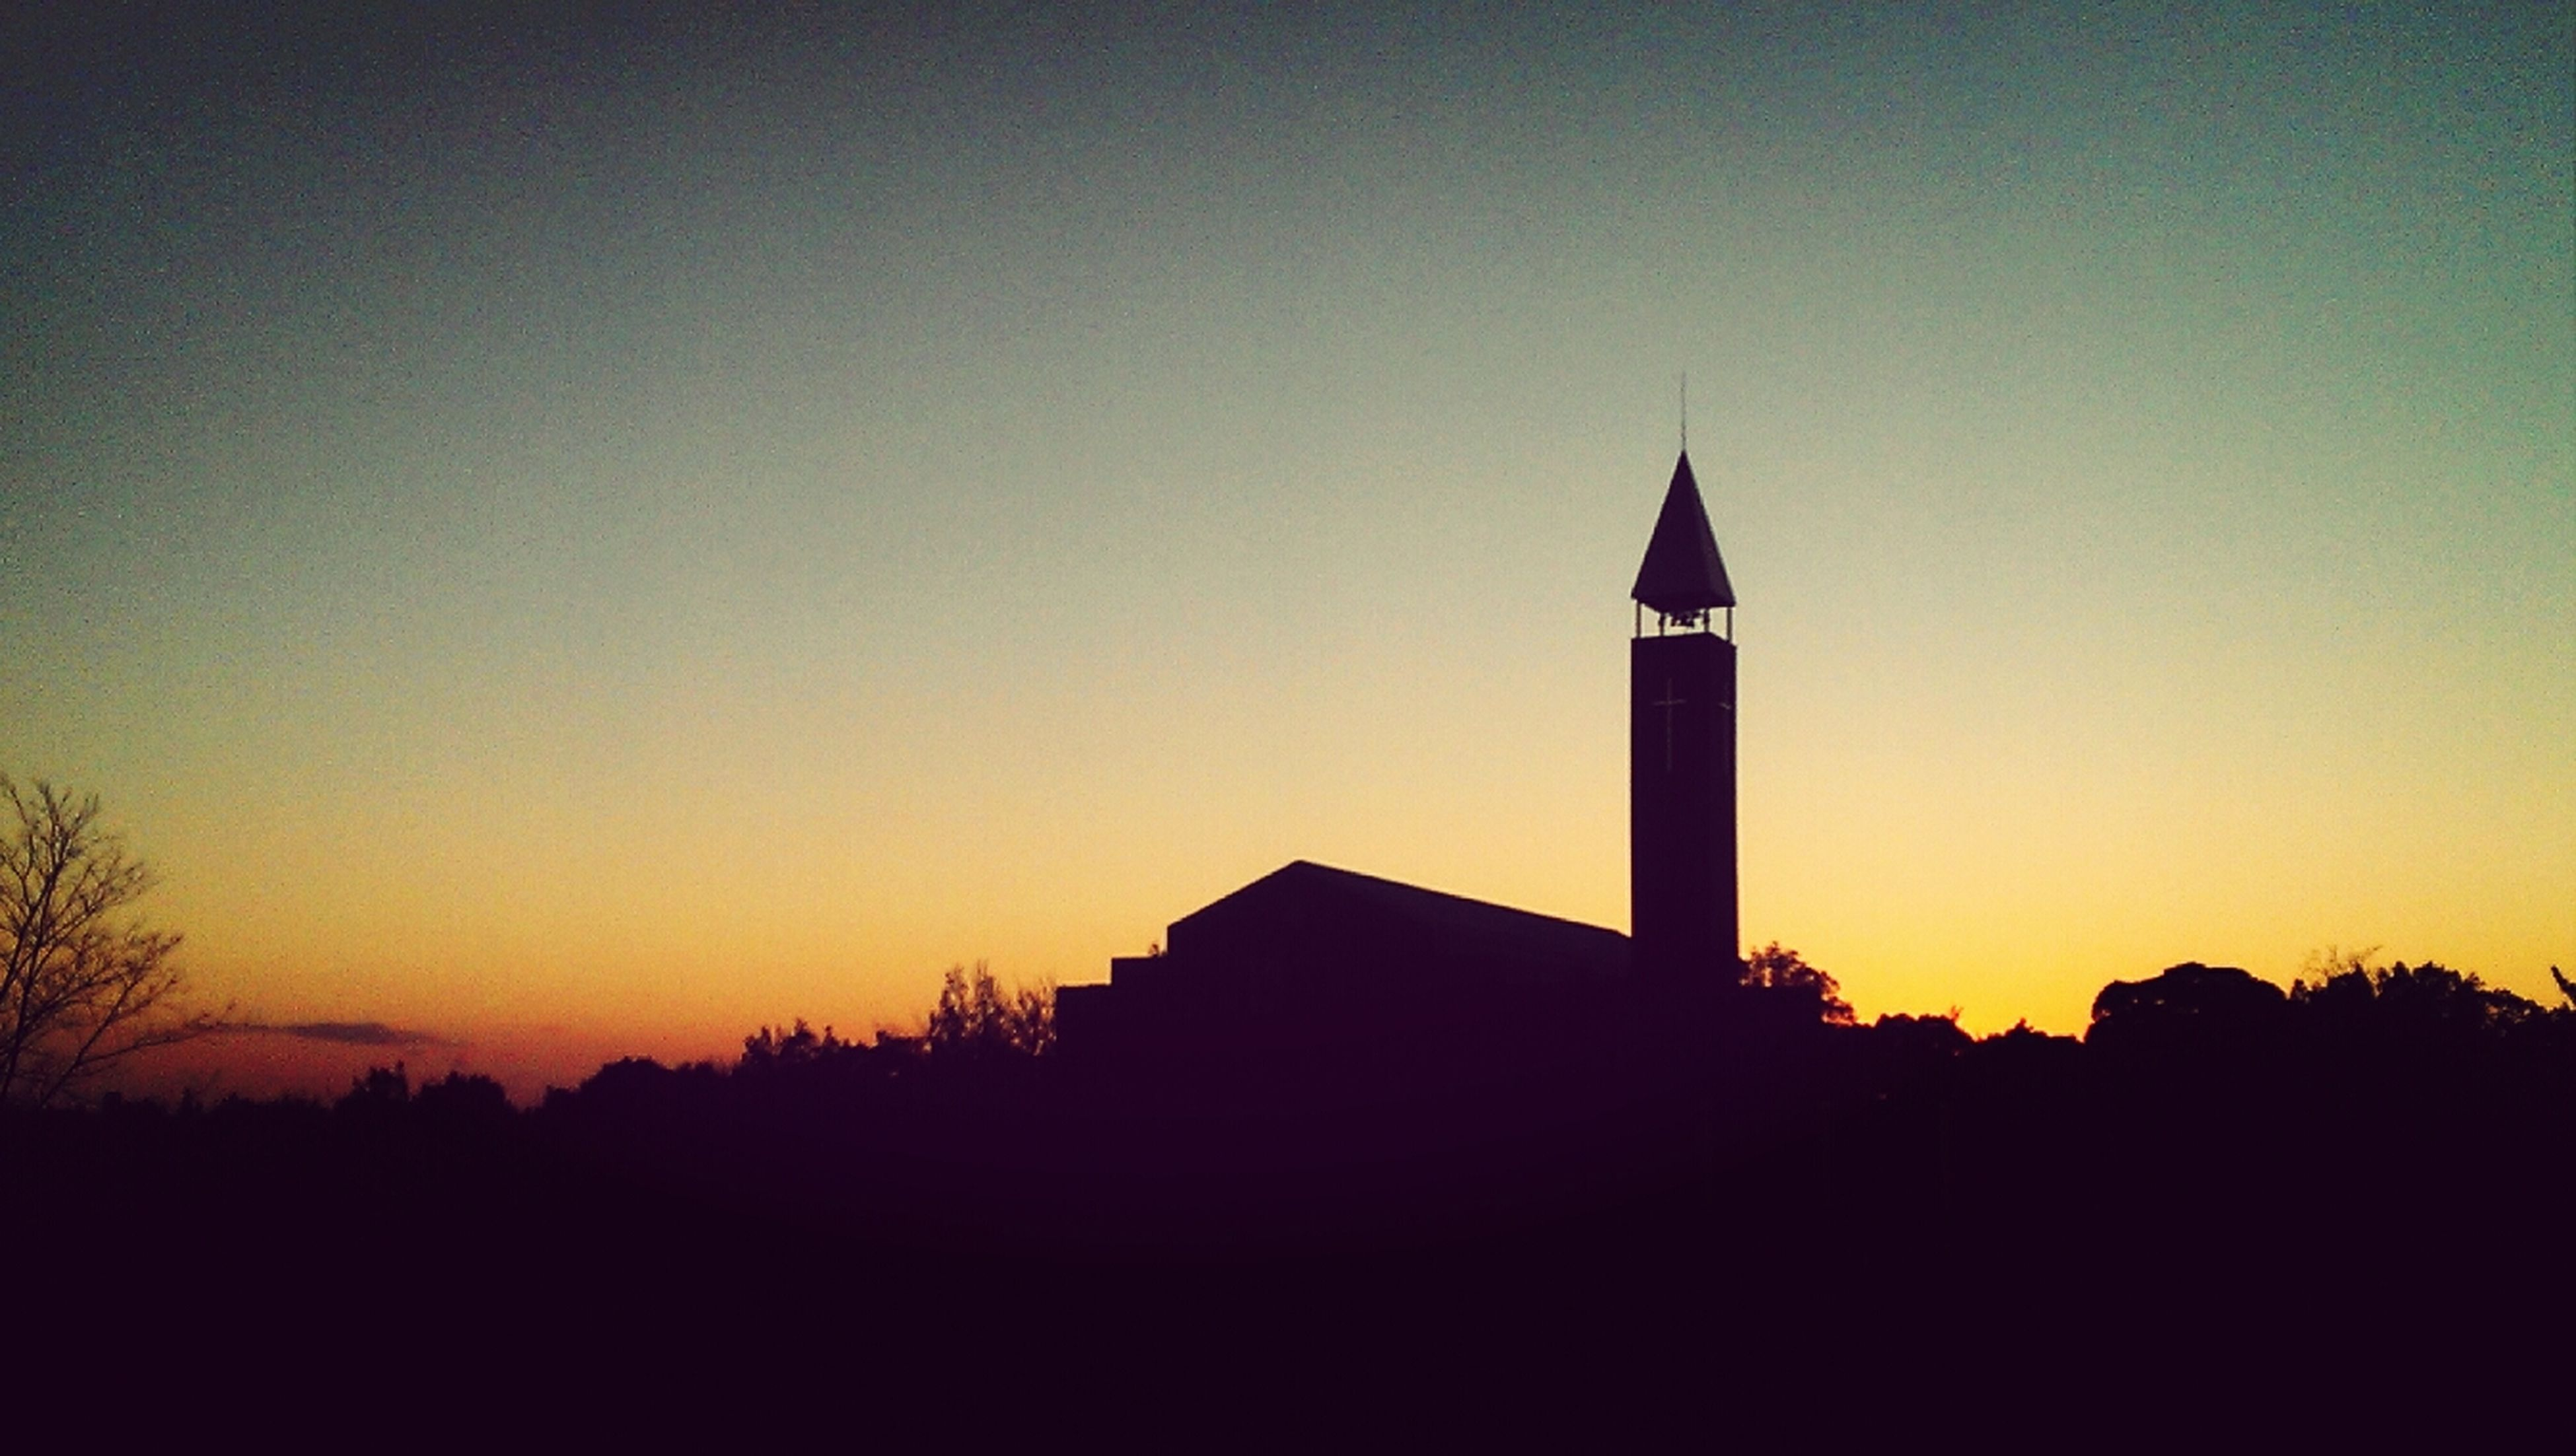 architecture, building exterior, built structure, sunset, silhouette, tower, religion, clear sky, place of worship, copy space, low angle view, spirituality, church, spire, orange color, clock tower, steeple, no people, sky